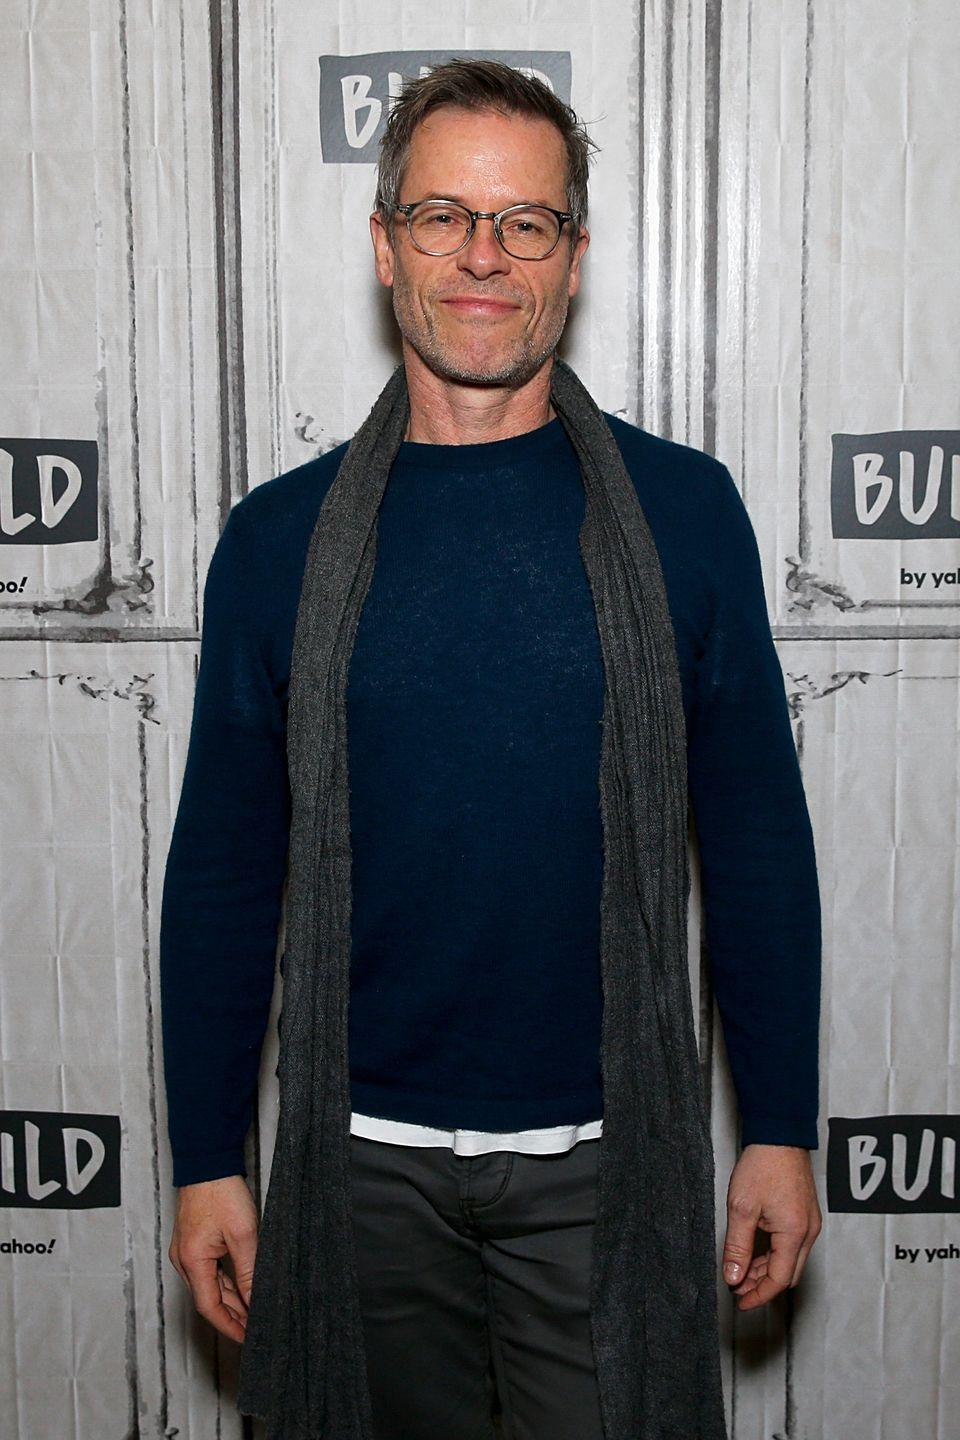 <p>You'd never guess the star of films like <em>Memento</em> and <em>Lawless</em> was raised just 50 miles west of Melbourne in the city of Geelong. </p>